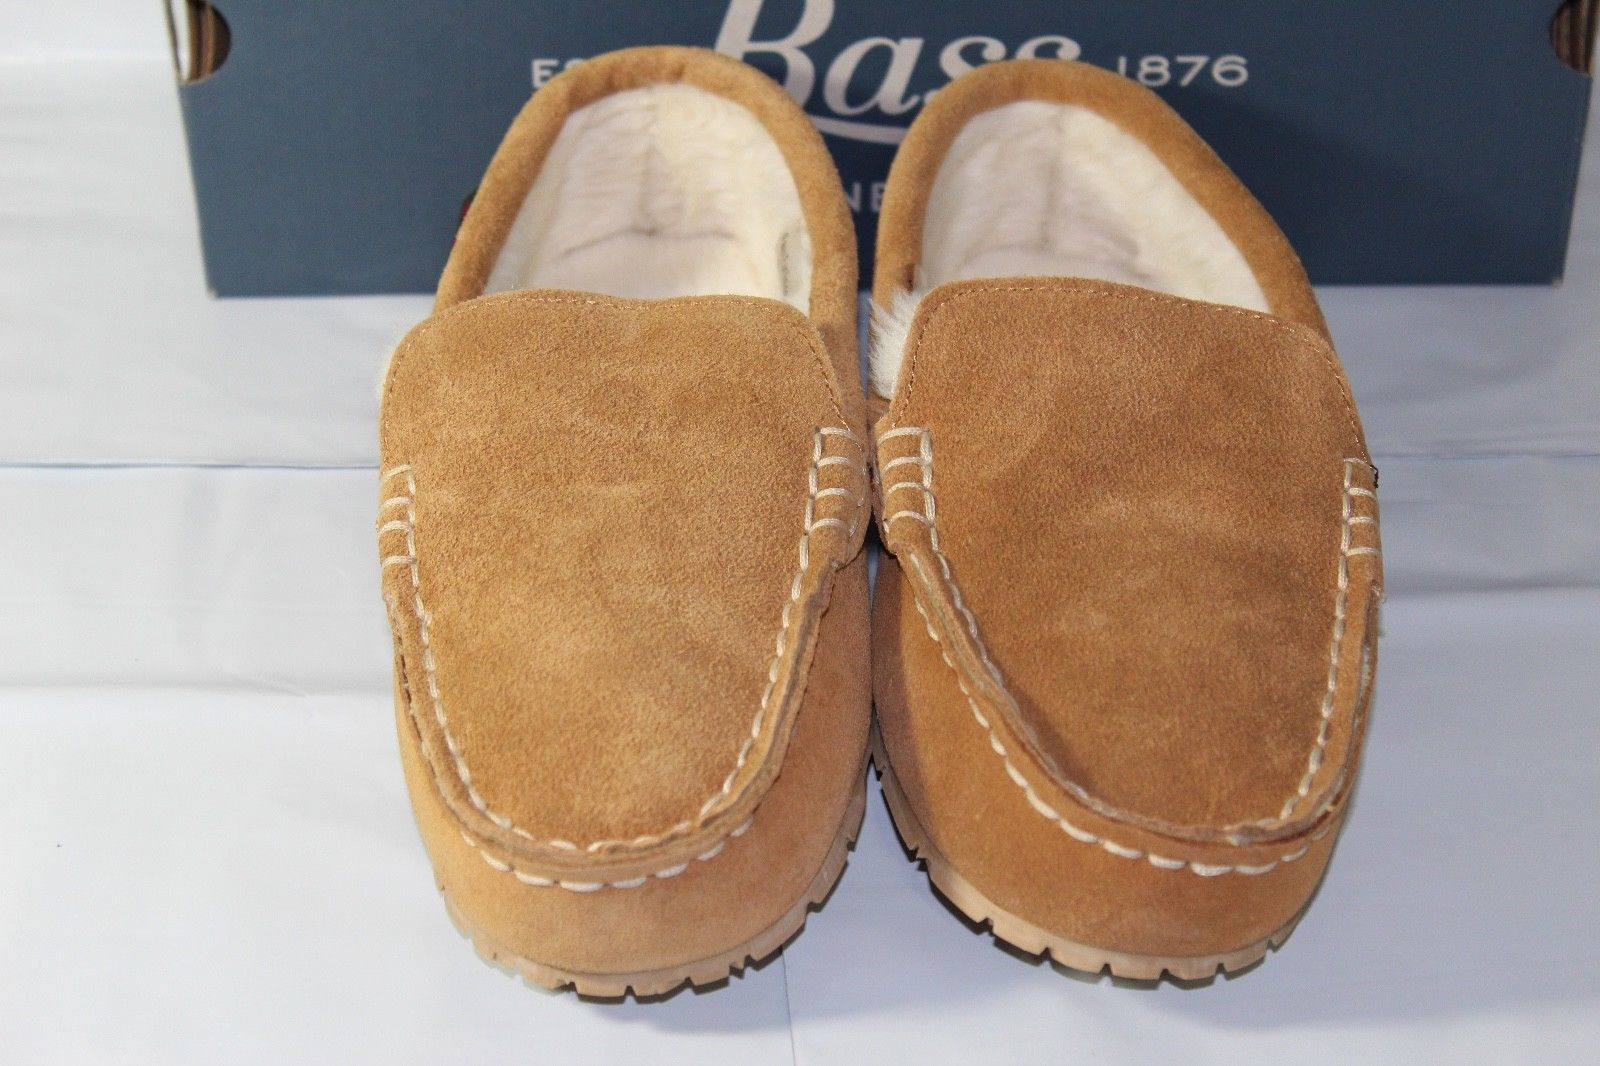 e24811fff ... G.H. BASS TAHOE MEN S SLIP ON SLIPPERS